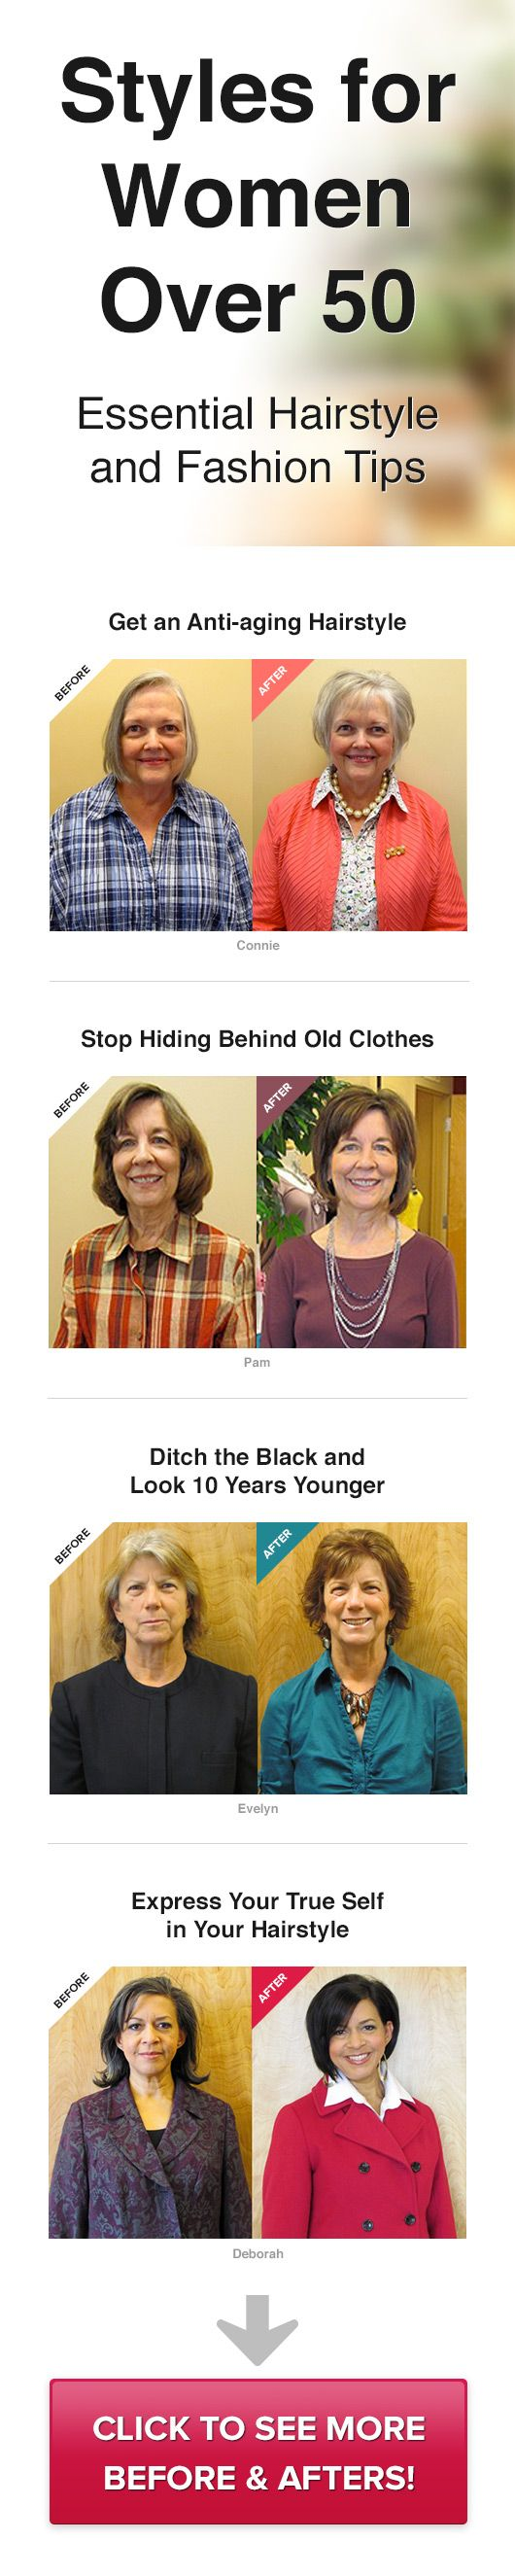 Beautiful Styles For Women Over 50 Fashion Tips For Women Over 50 Look Beautiful Feel